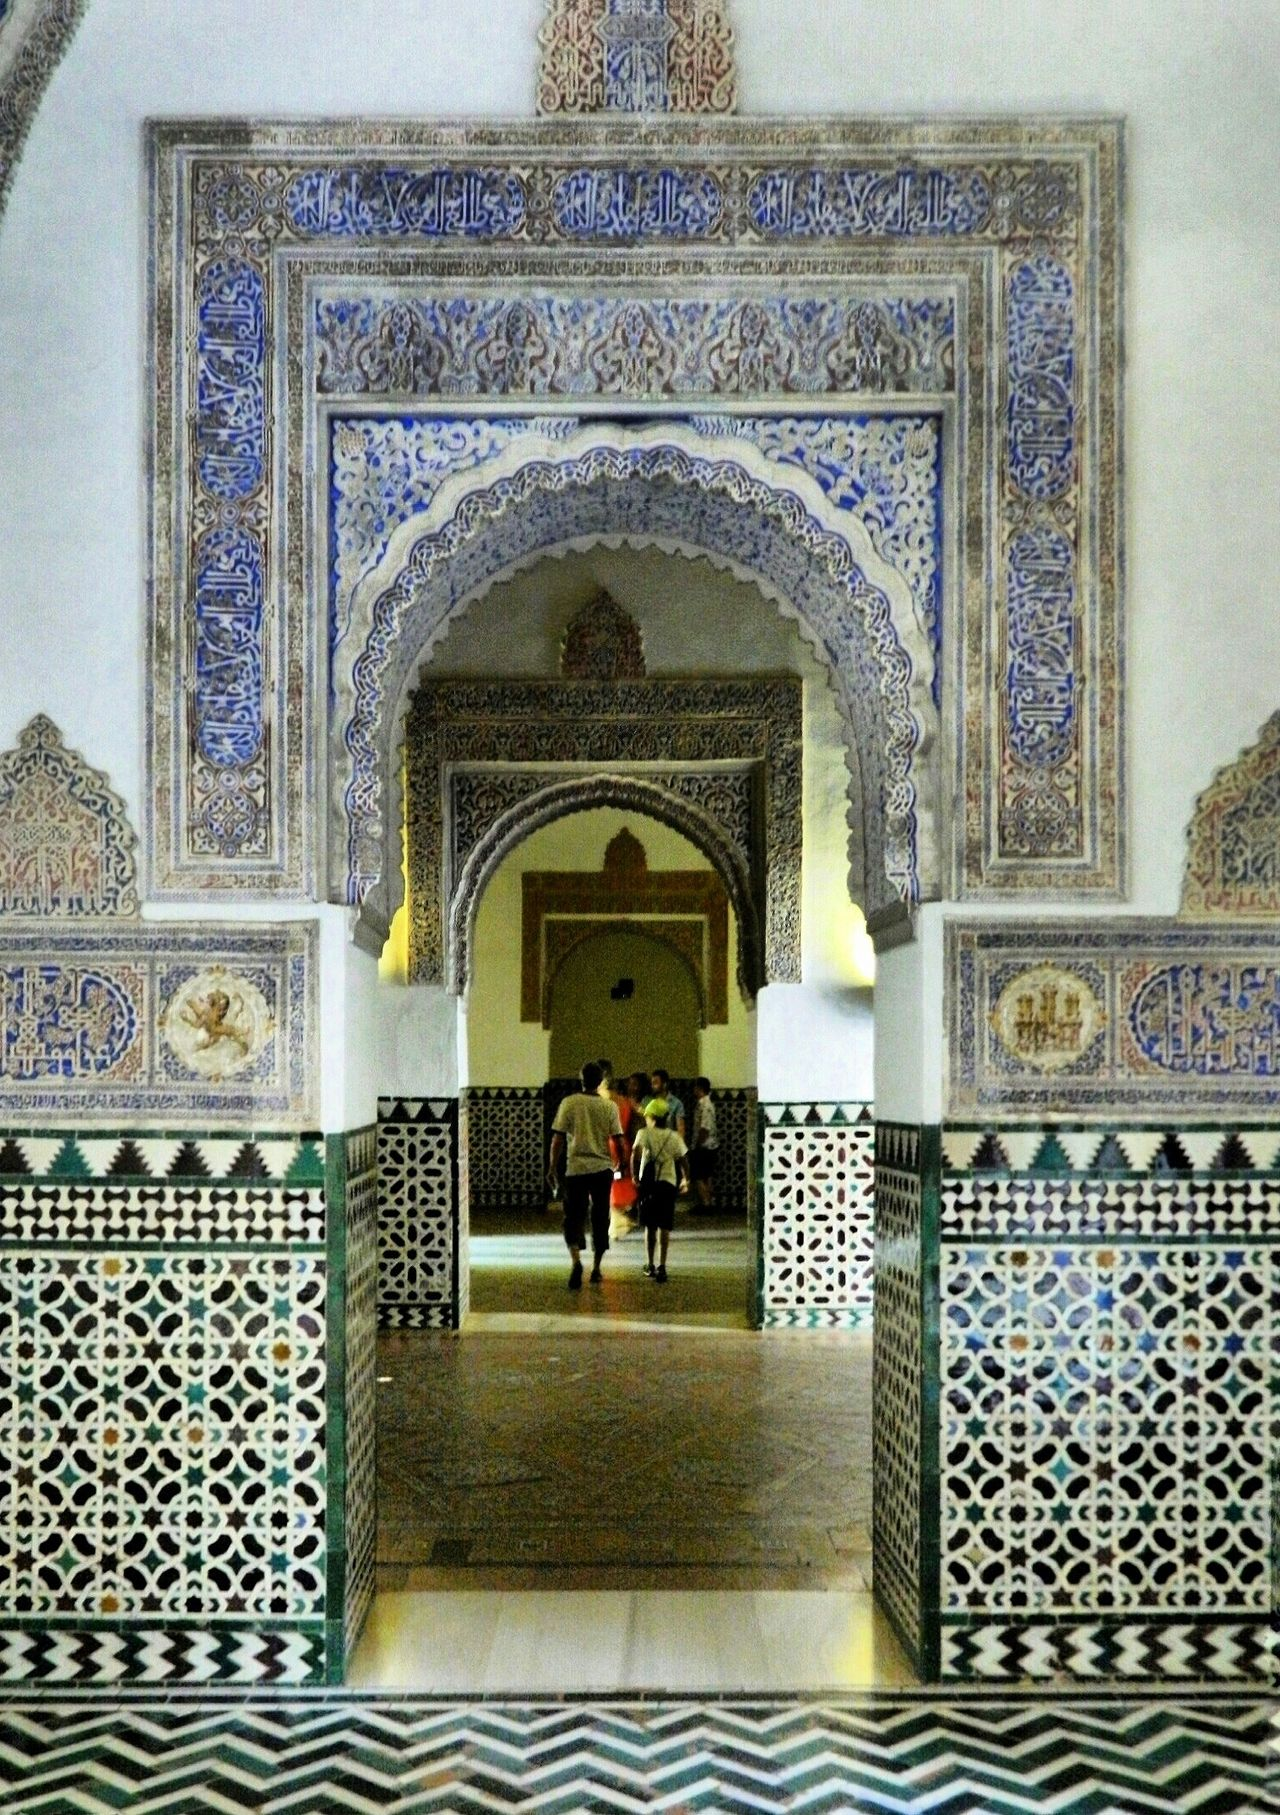 Realesalcazares de Sevilla Seville SPAIN Historical Place Andalusia Palace Historical Monuments